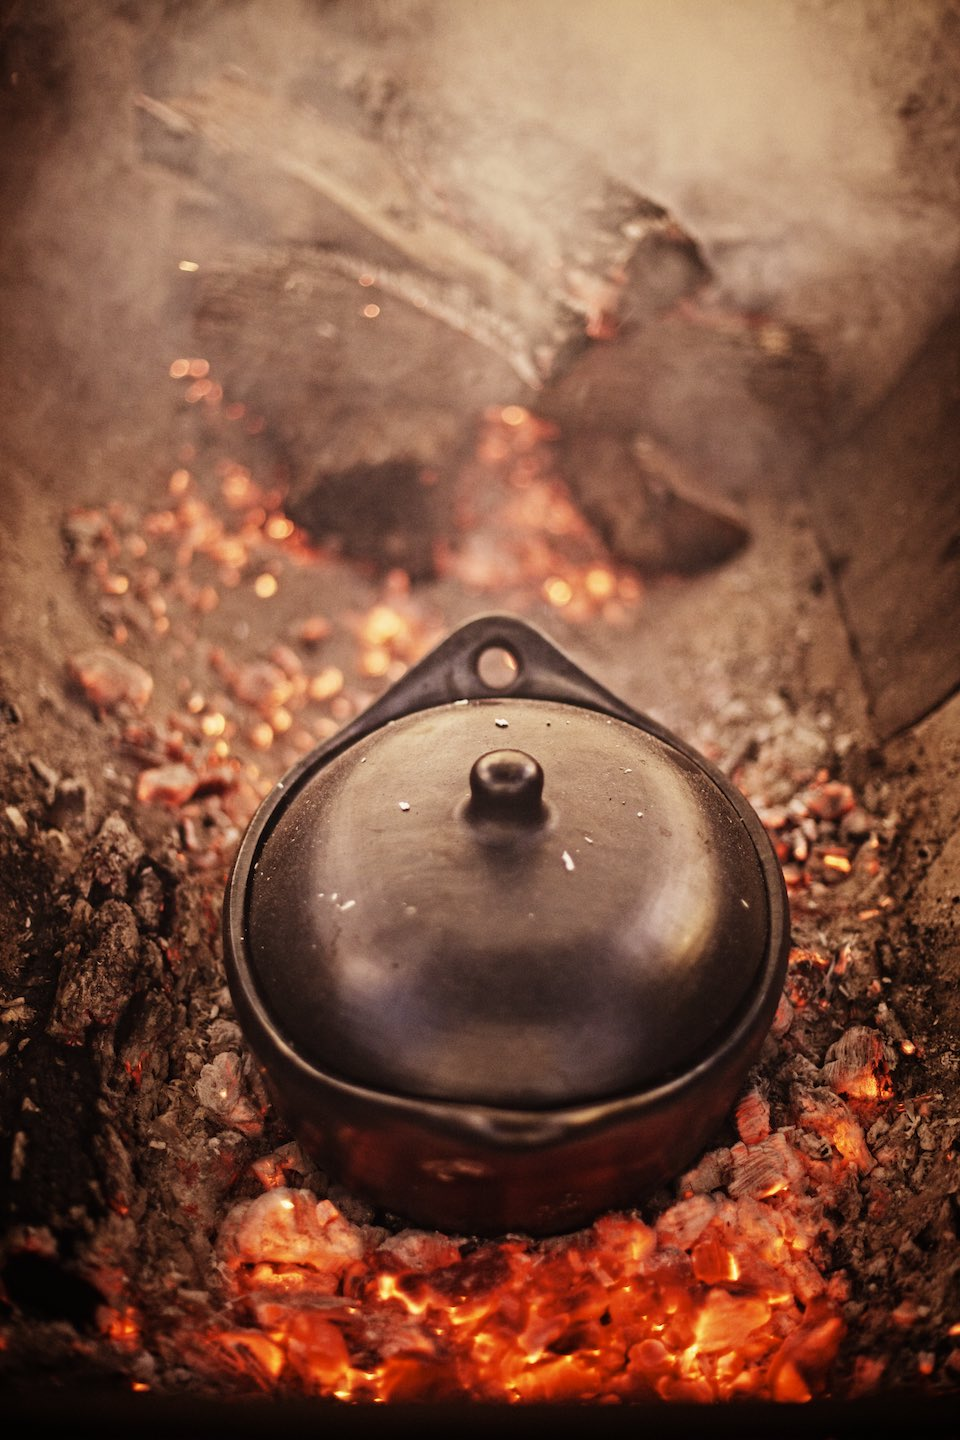 smoke_cookbook_woodfired030